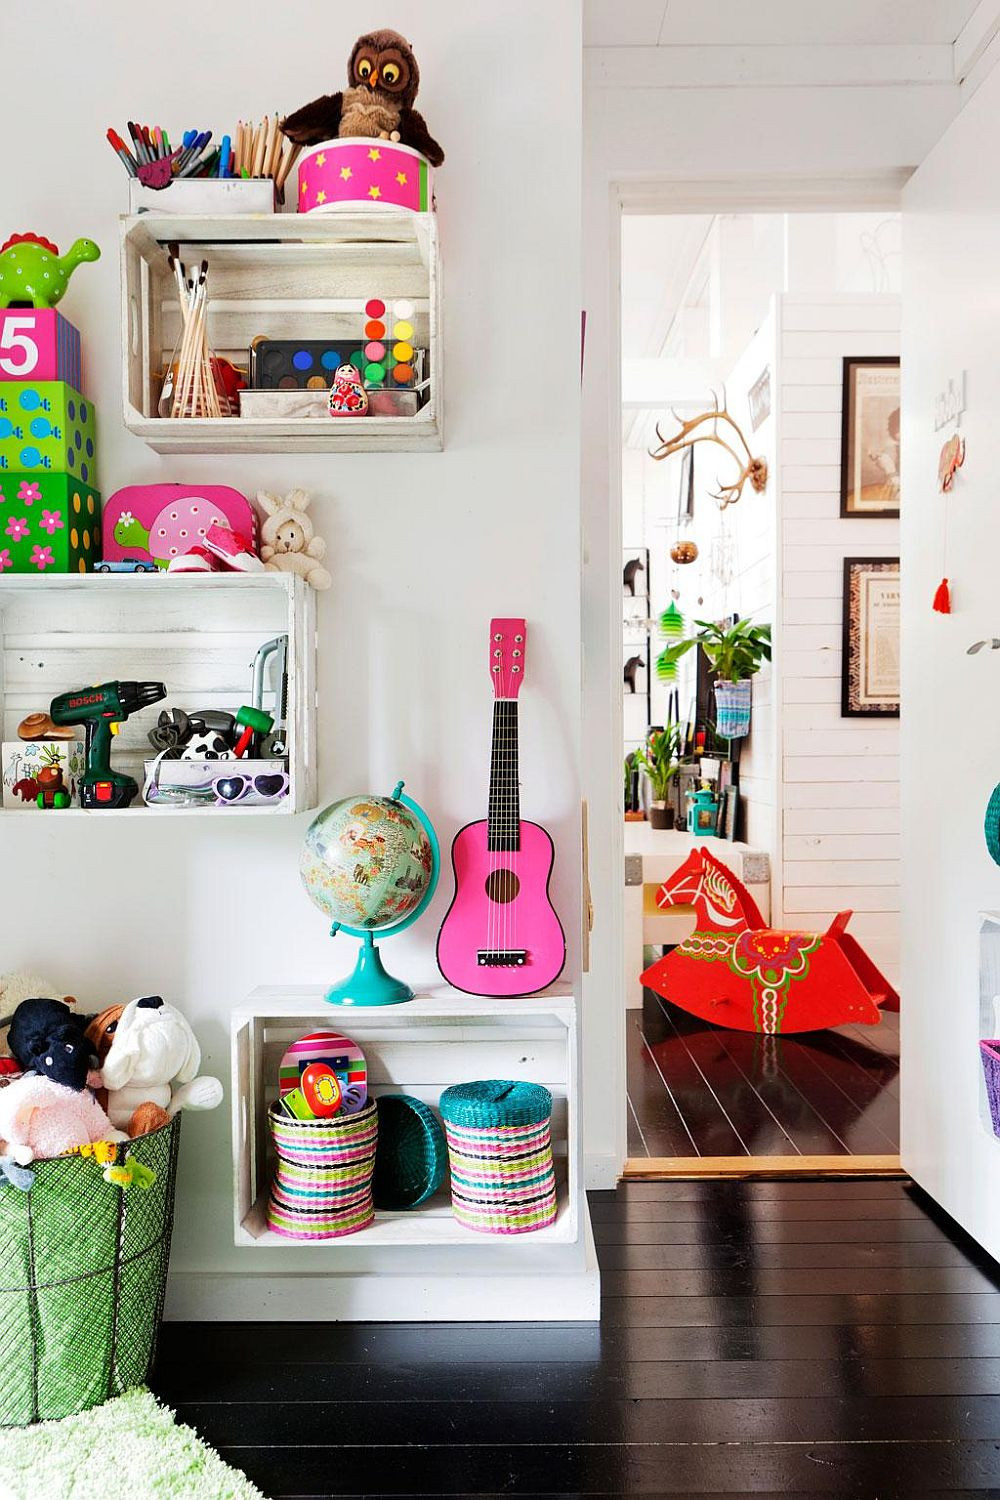 Best ideas about Diy Kids Room . Save or Pin 11 Space Saving DIY Kids' Room Storage Ideas that Help Now.